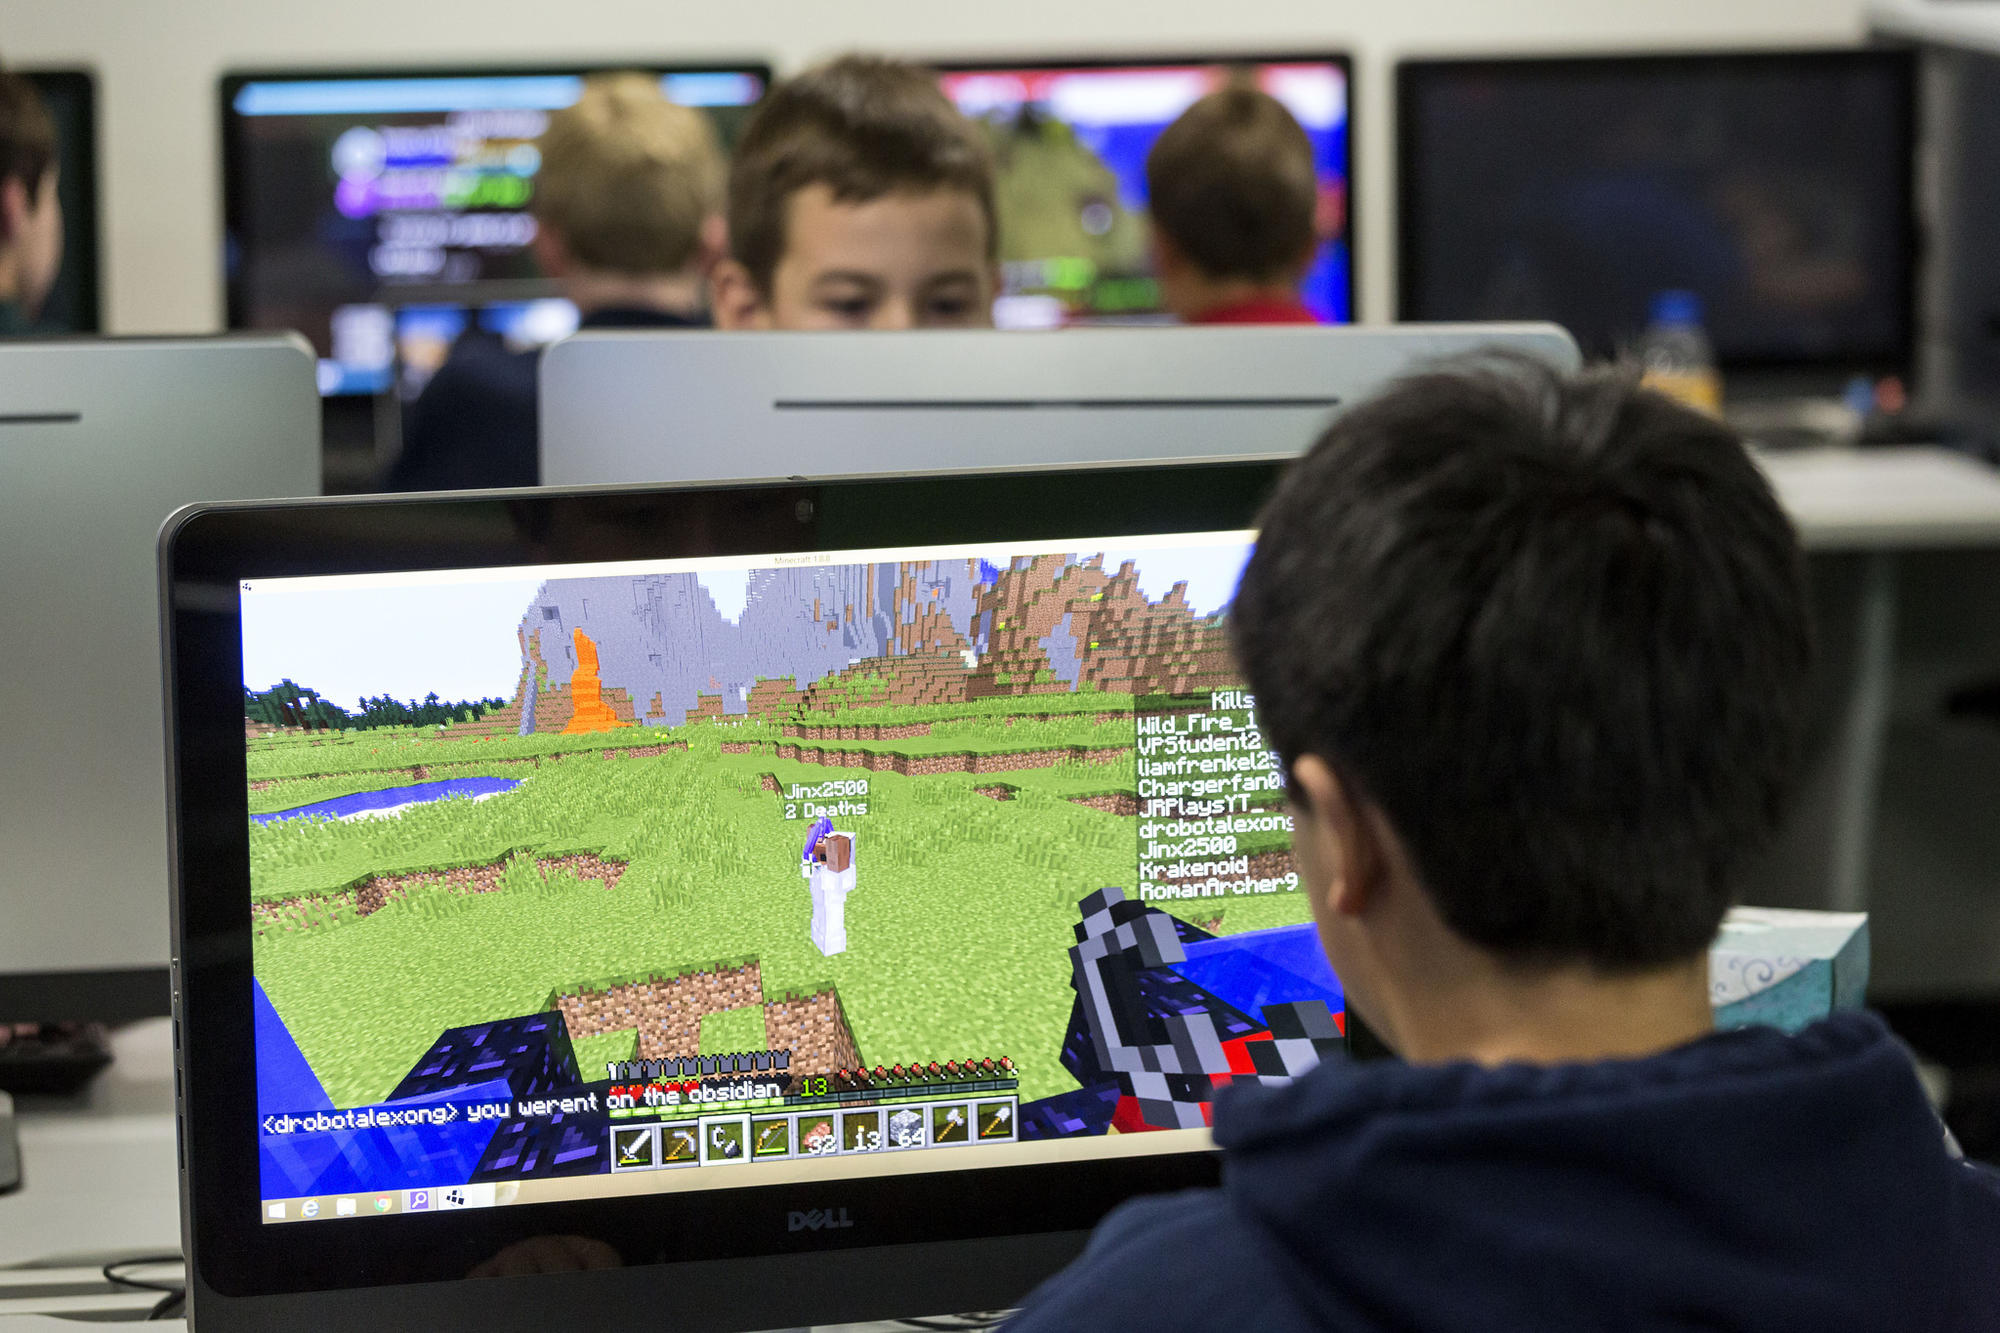 Viewpoint School students began regularly broadcasting on Twitch from a classroom earlier this year.